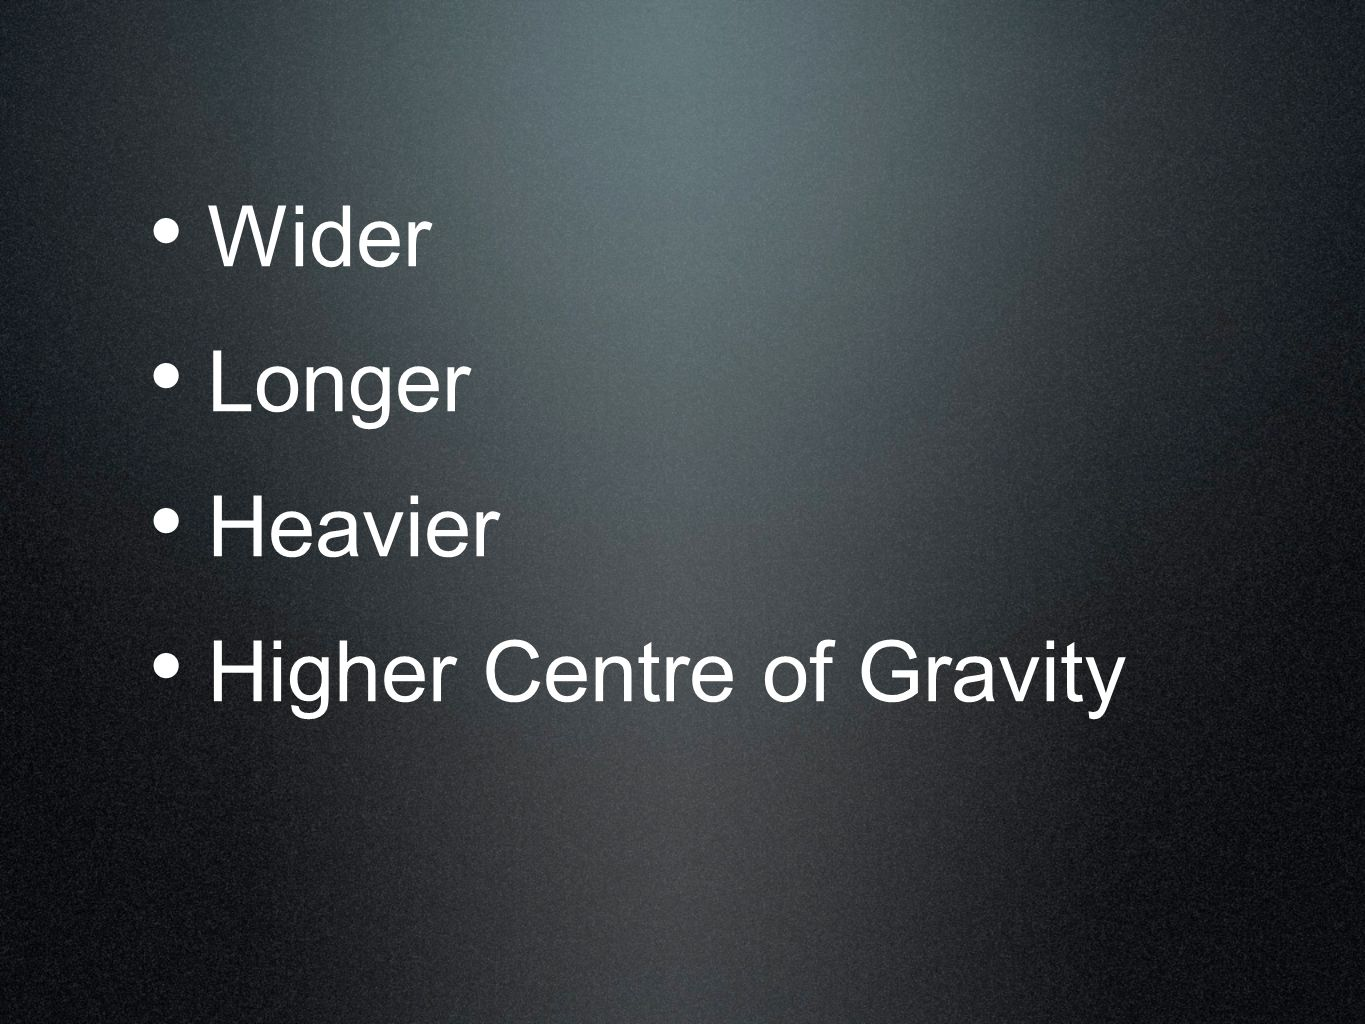 Wider Longer Heavier Higher Centre of Gravity